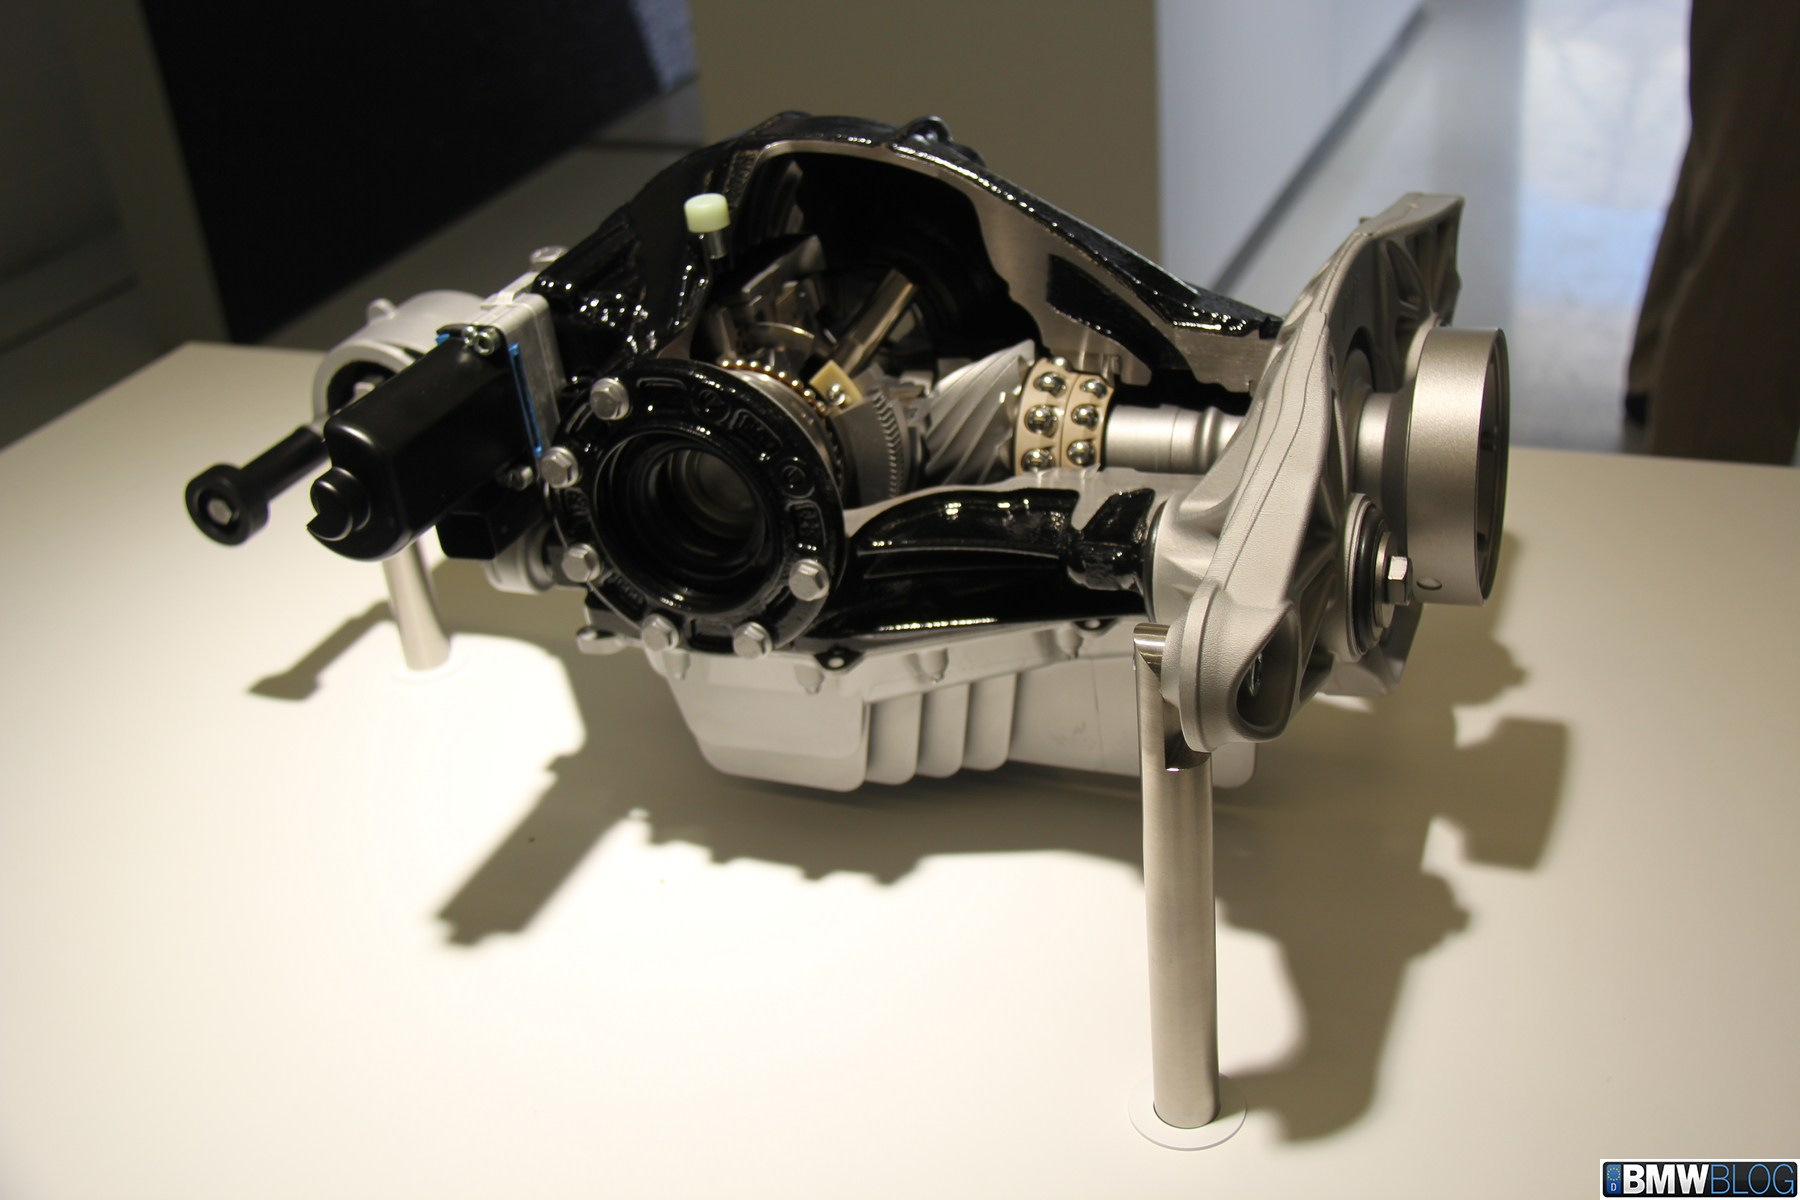 DCT Transmission: How they work and why we use them